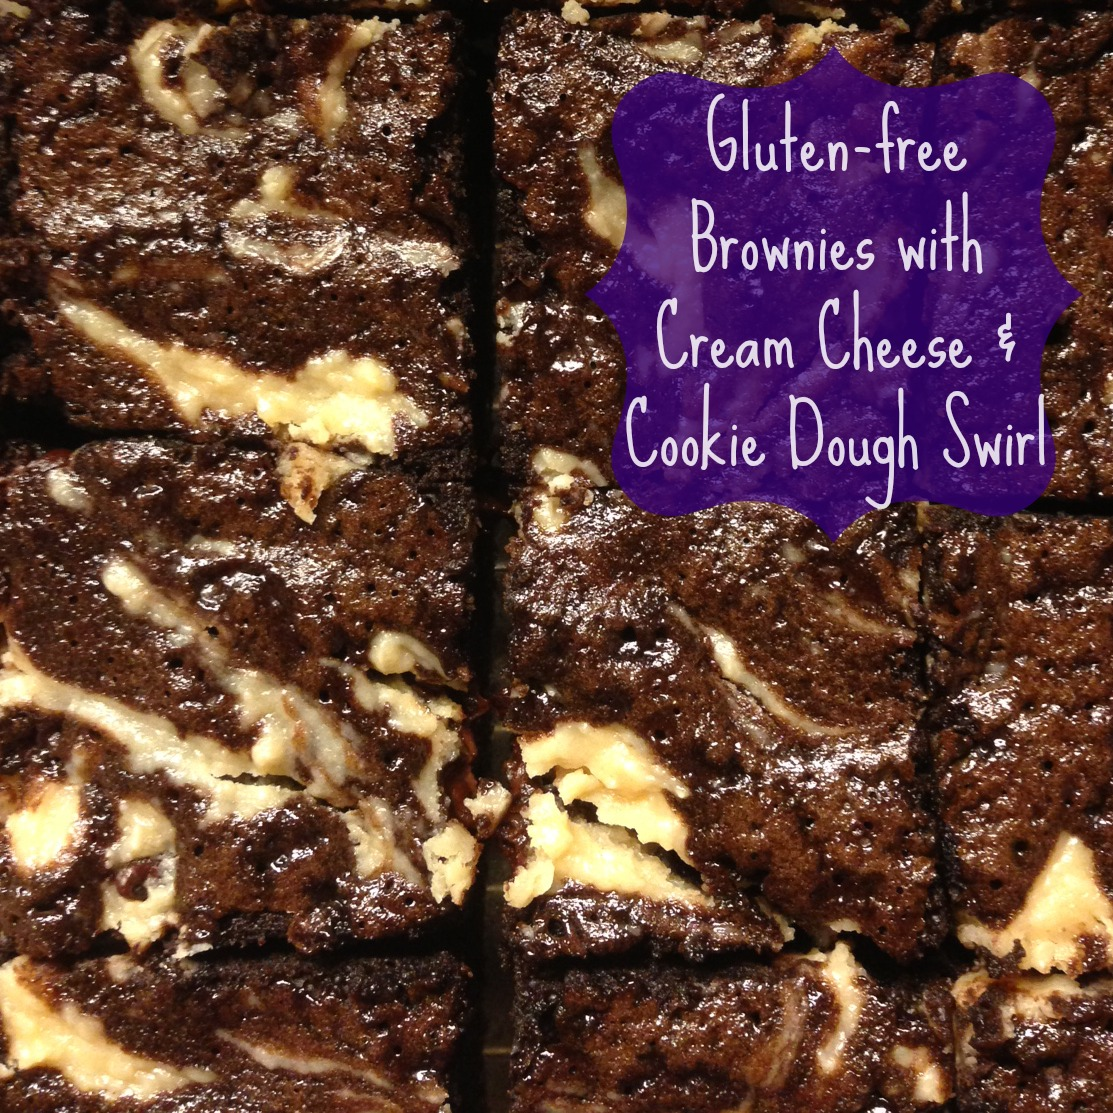 Dark Chocolate Brownies With Cookie Dough Cream Cheese Swirl My First From Scratch Gluten Free Baking Experiment Cake Is The Only Thing That Matters